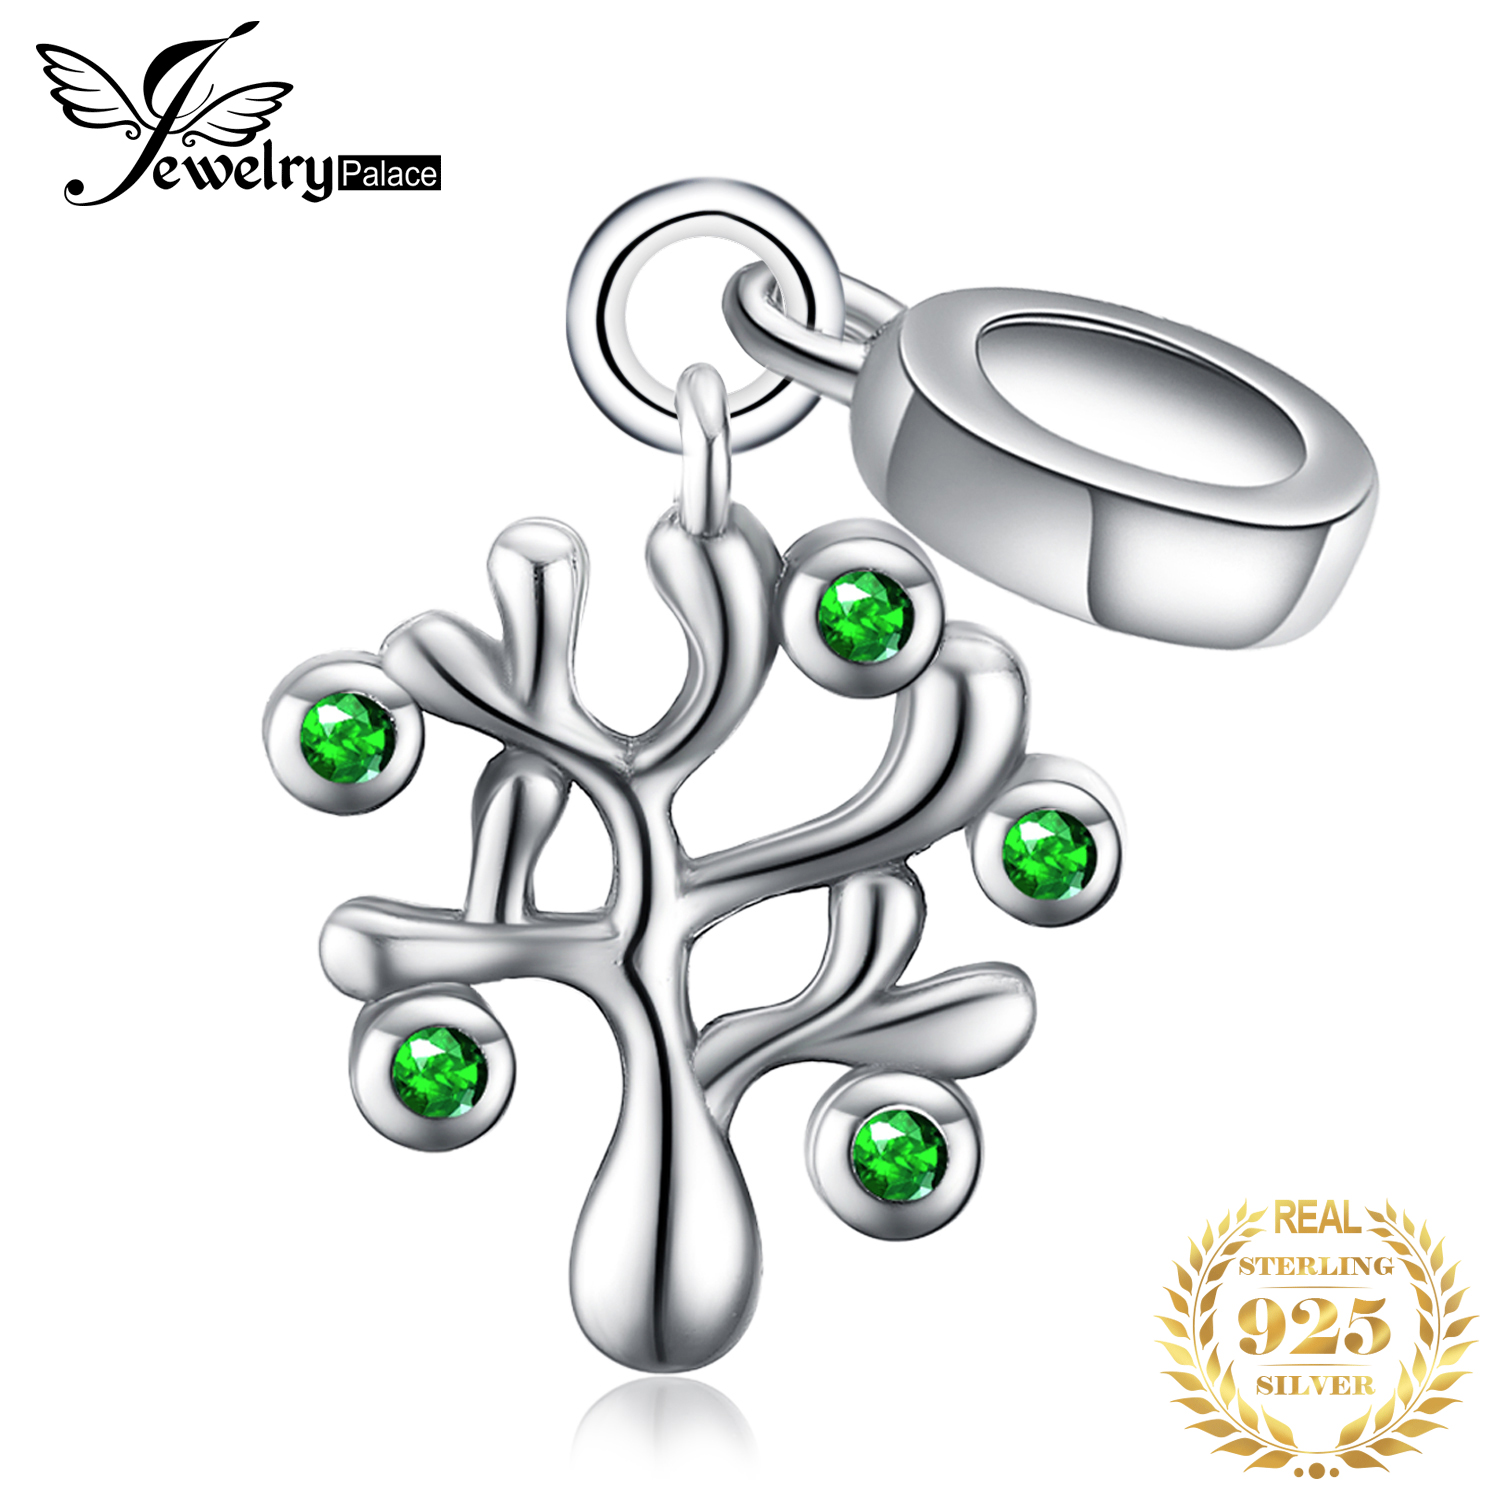 JewelryPalace Life Of Tree 925 Sterling Silver Beads Charms Silver 925 Original For Bracelet Silver 925 Original Jewelry Making